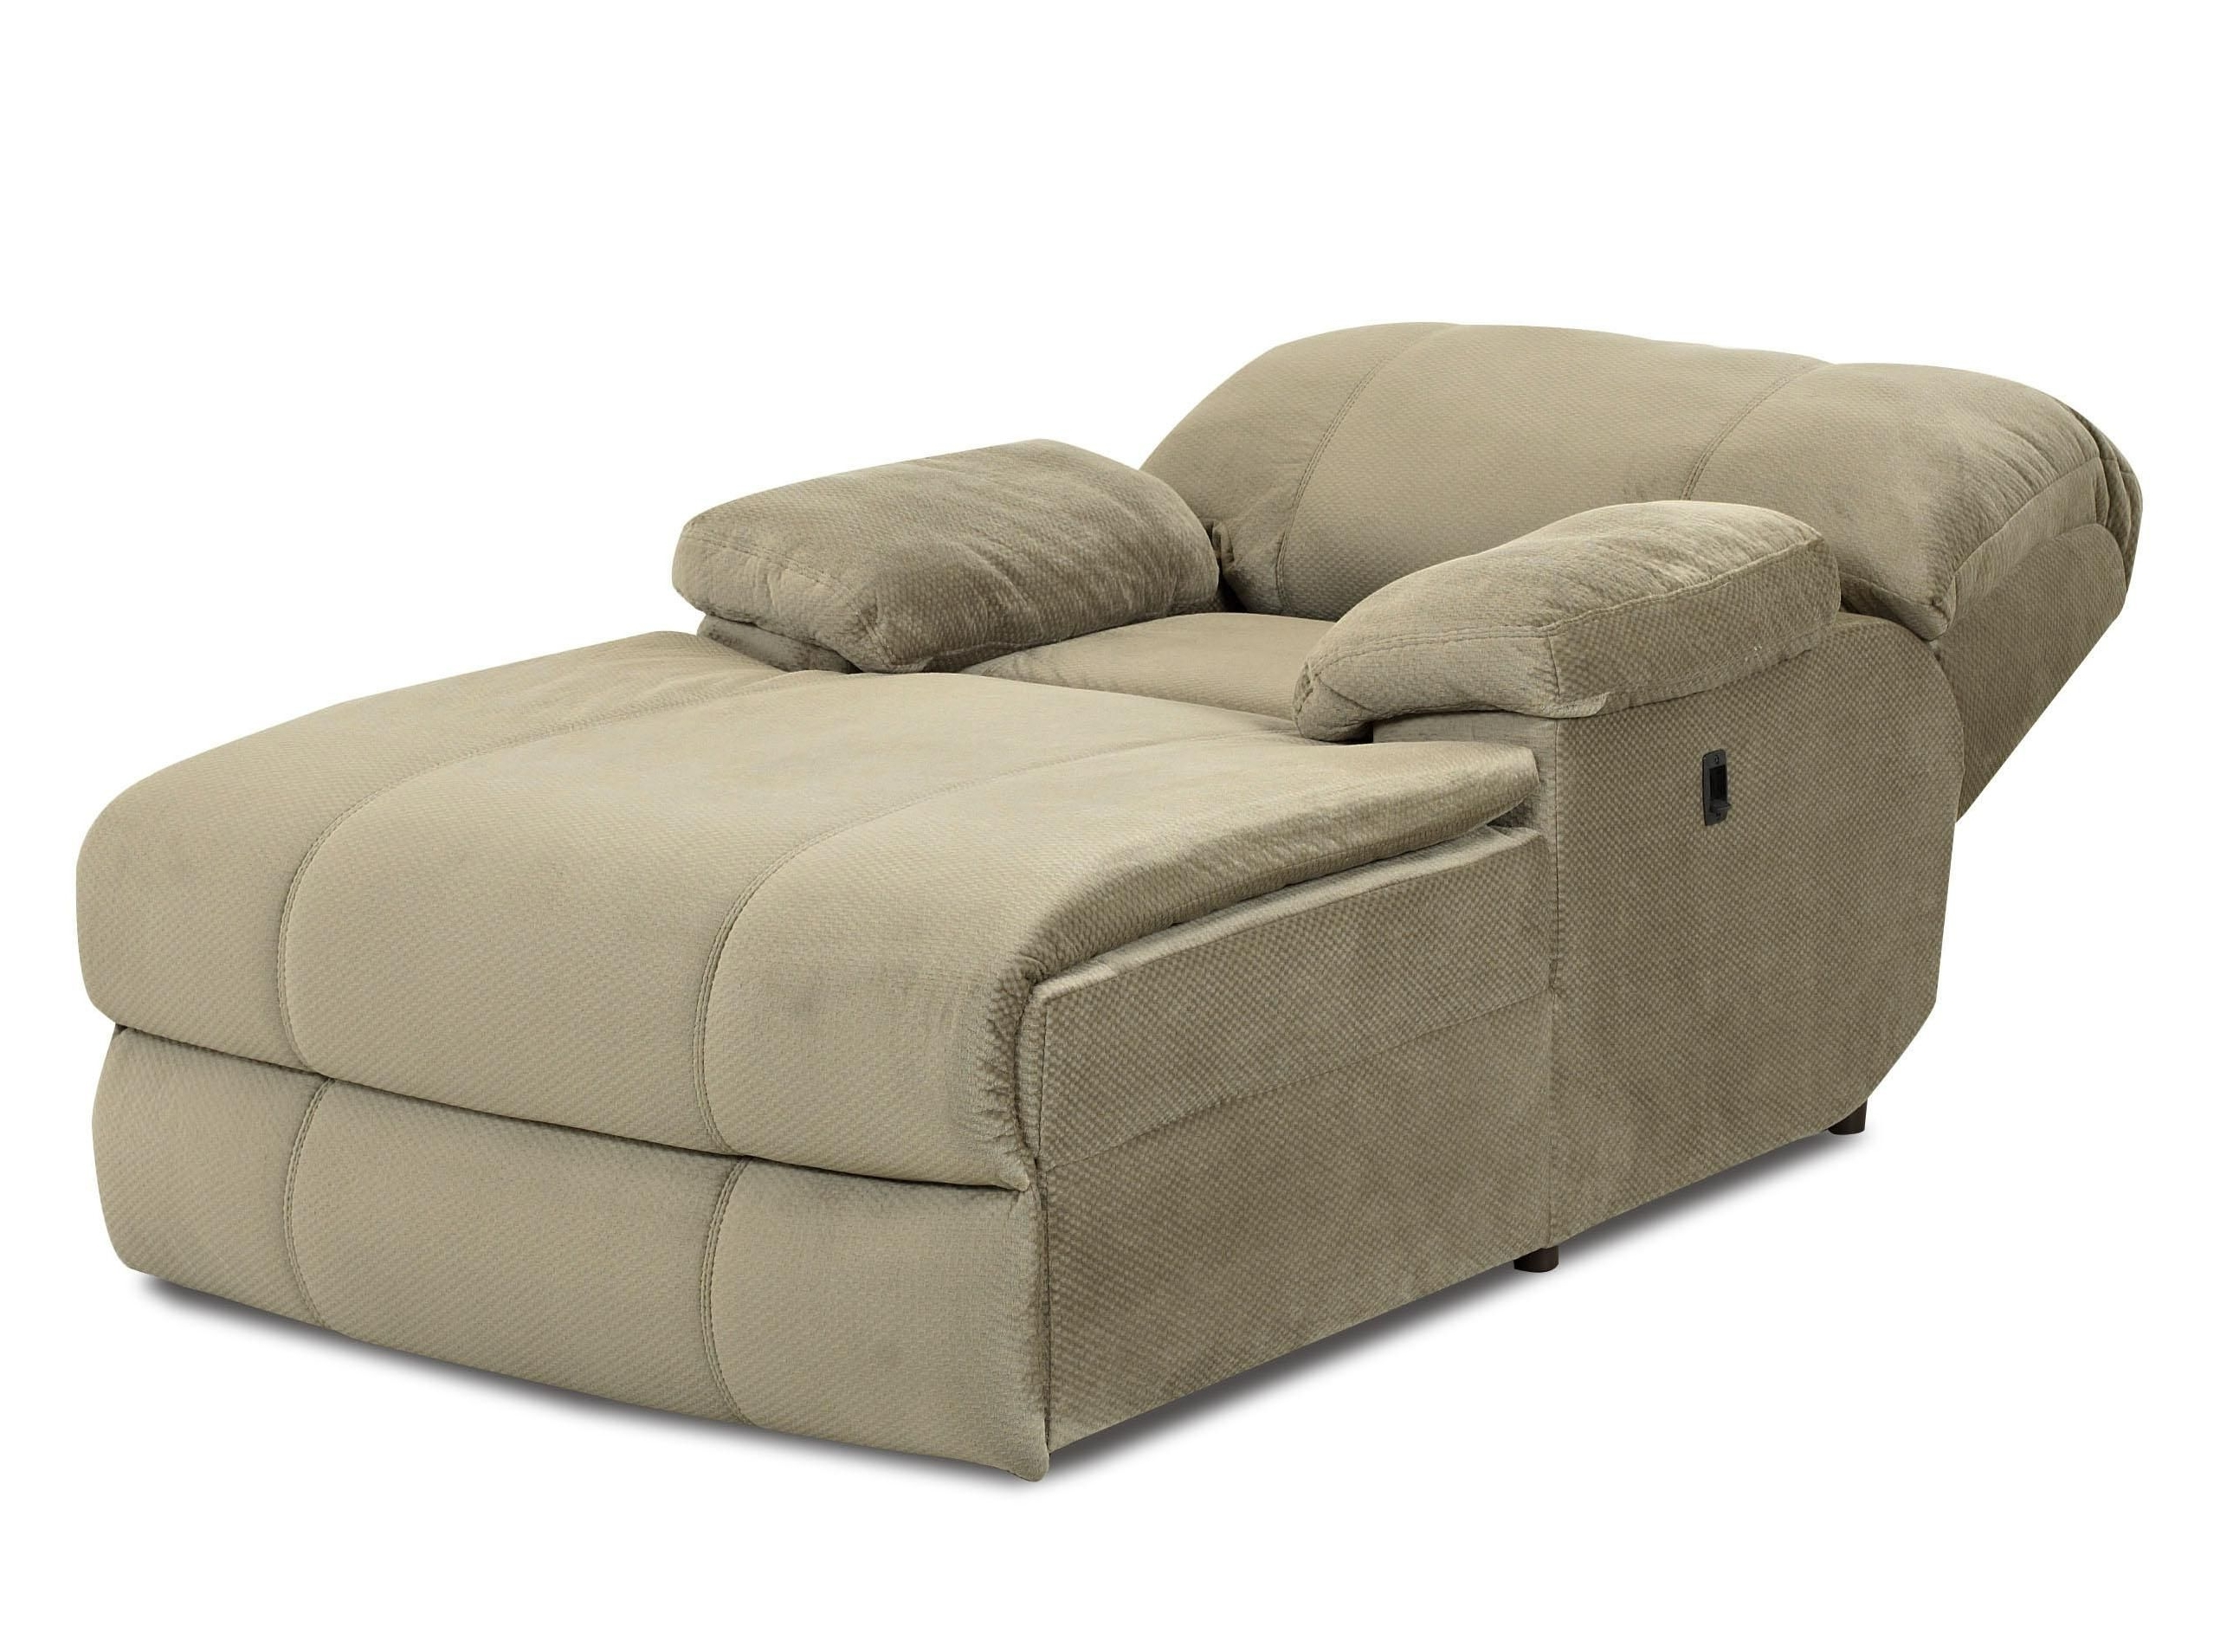 Oversized Chaise Lounge Chairs For Latest Indoor Oversized Chaise Lounge (View 15 of 15)